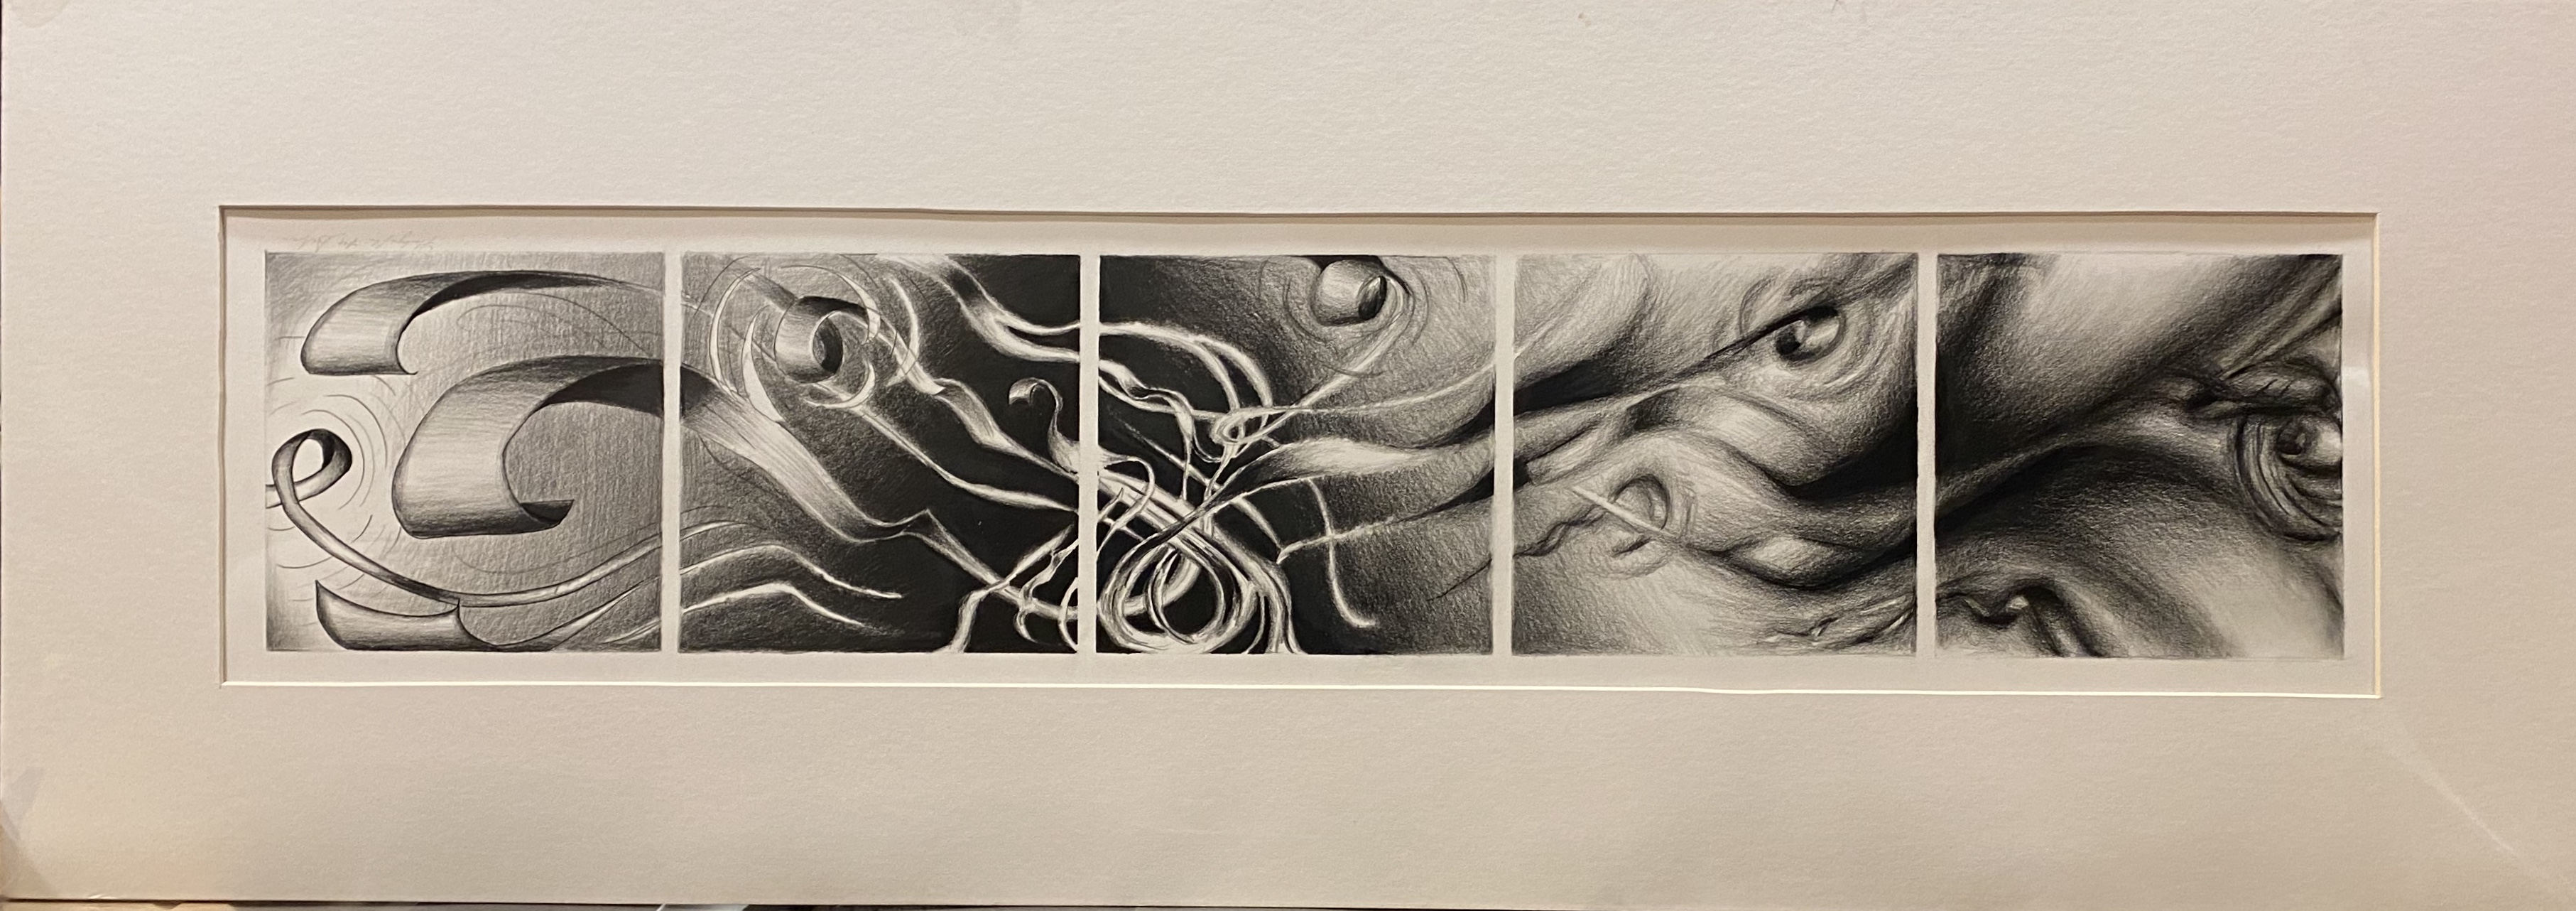 "Ribbon Flow pencil, ink 6"" X 29"" $150."